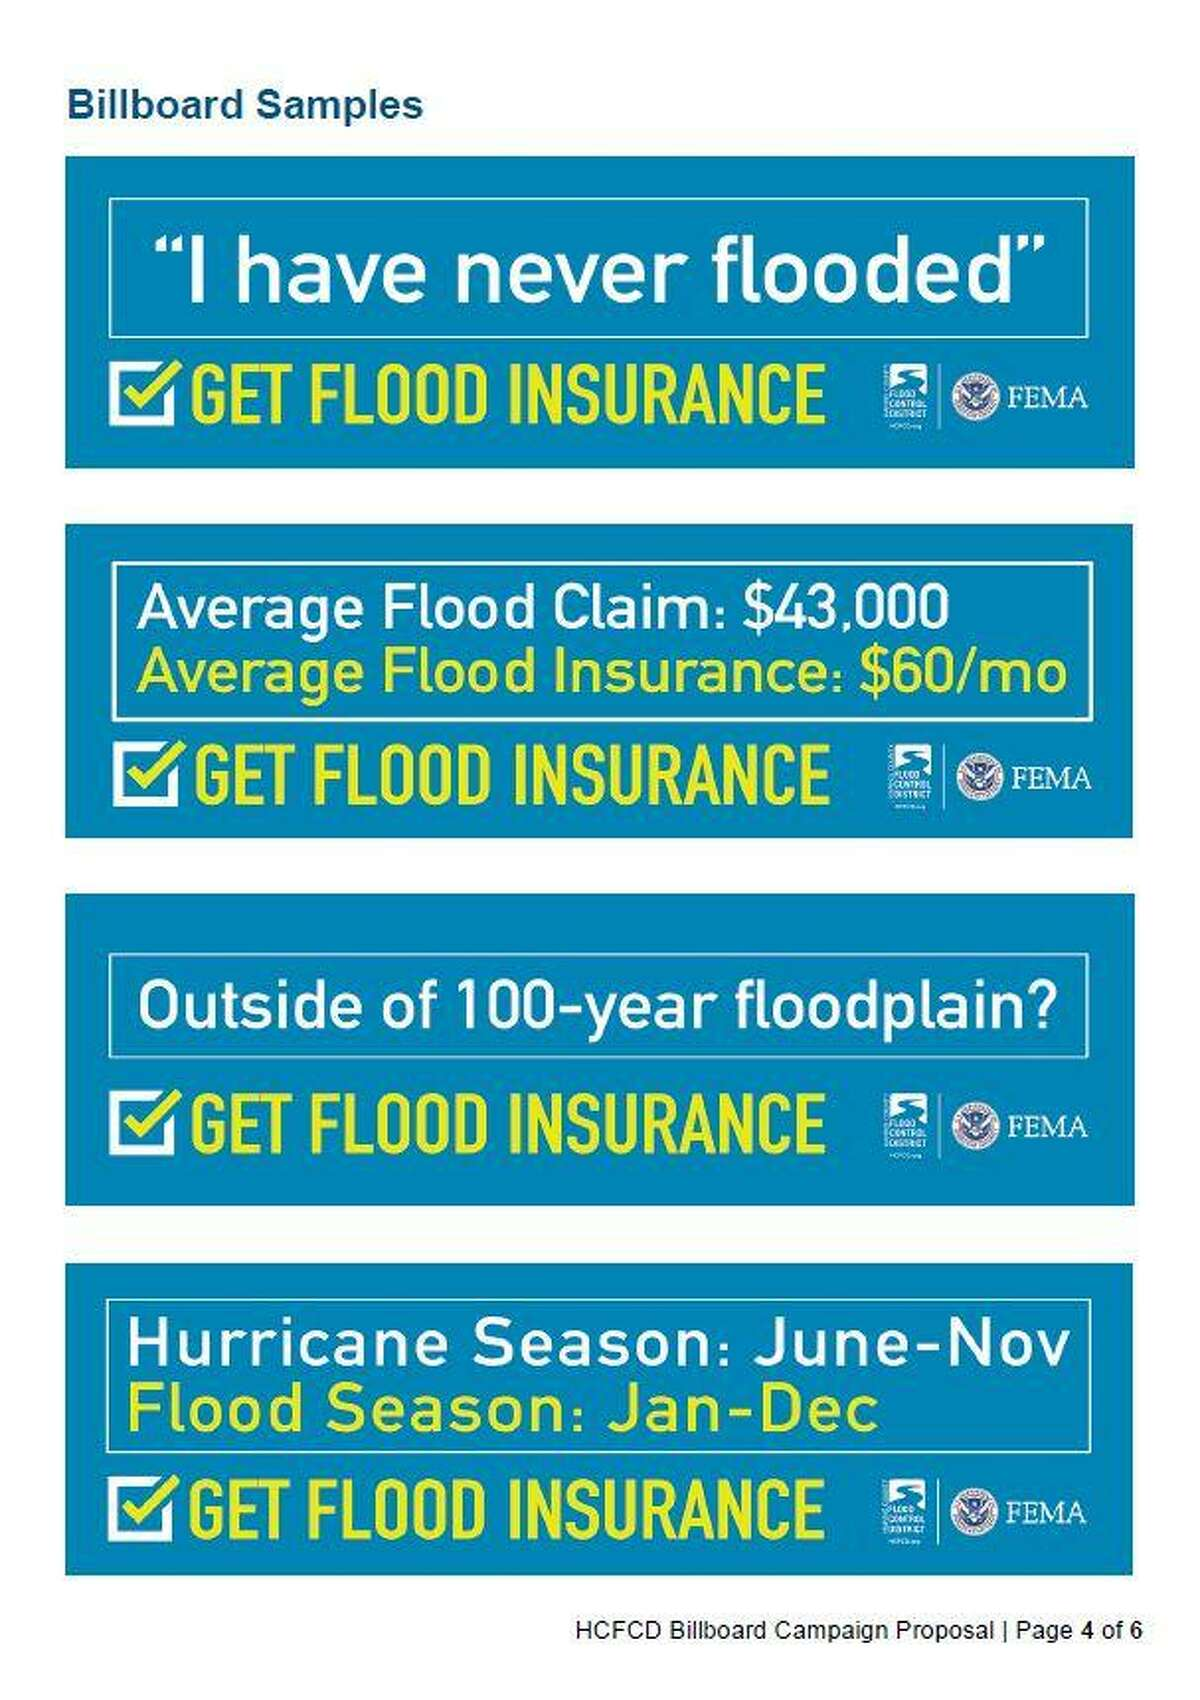 After Hurricane Harvey, the Harris County Flood Control District is seeking federal grant funds to launch a billboard campaign aimed at encouraging residents to buy flood insurance.